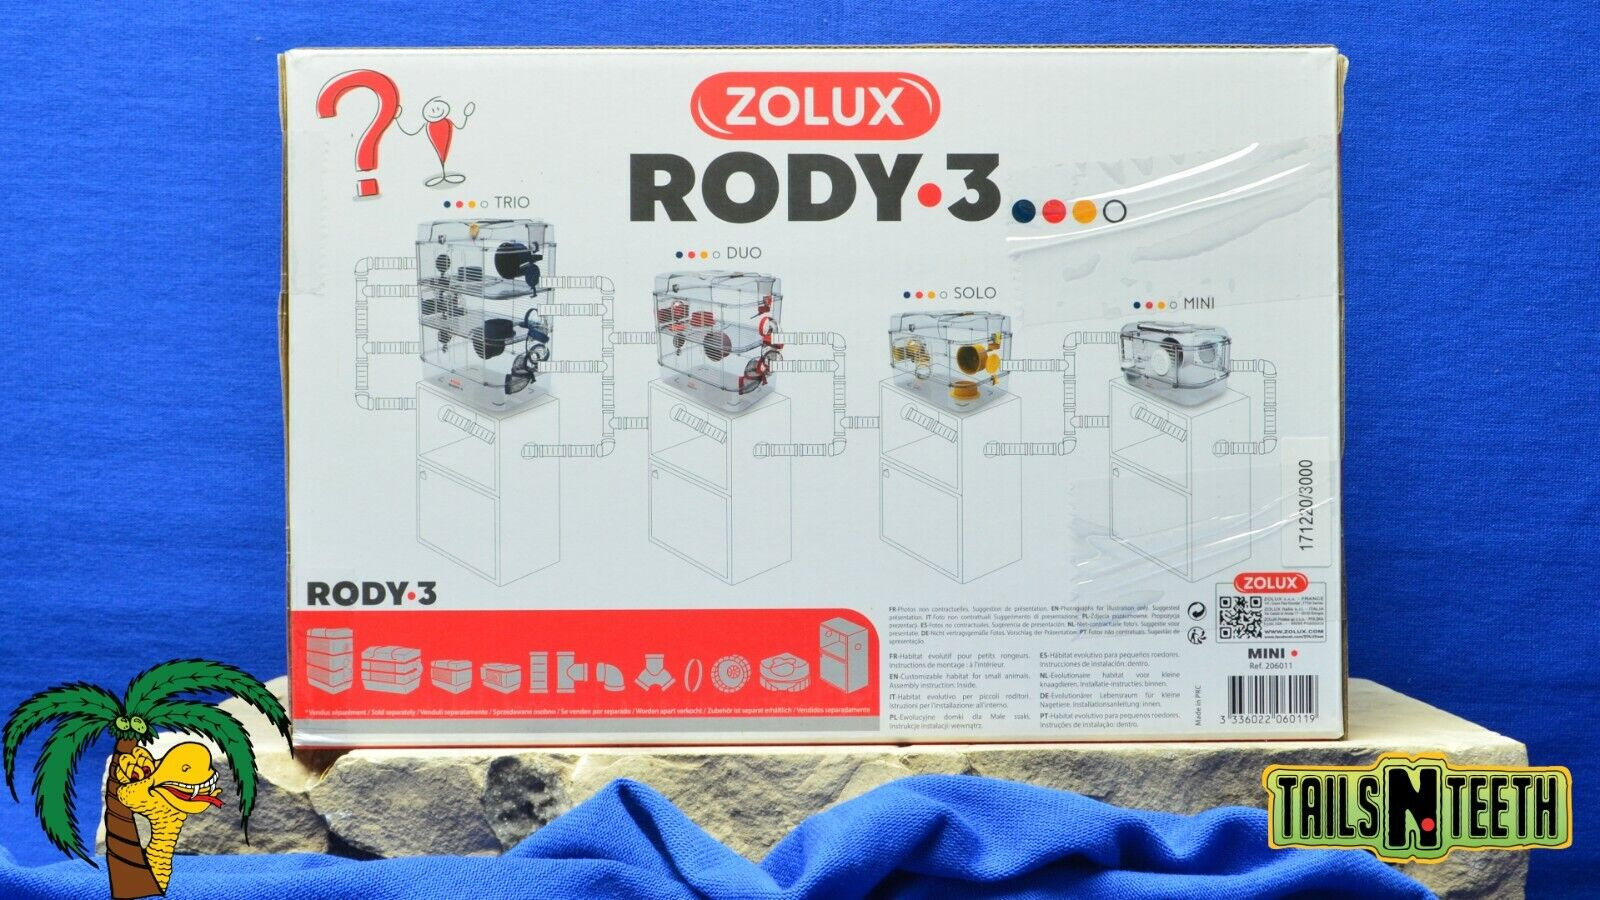 Zolux RODY-3 MINI Cage For Hamsters Gerbils Mice - Red - InterConnecting Cages - CA$29.99